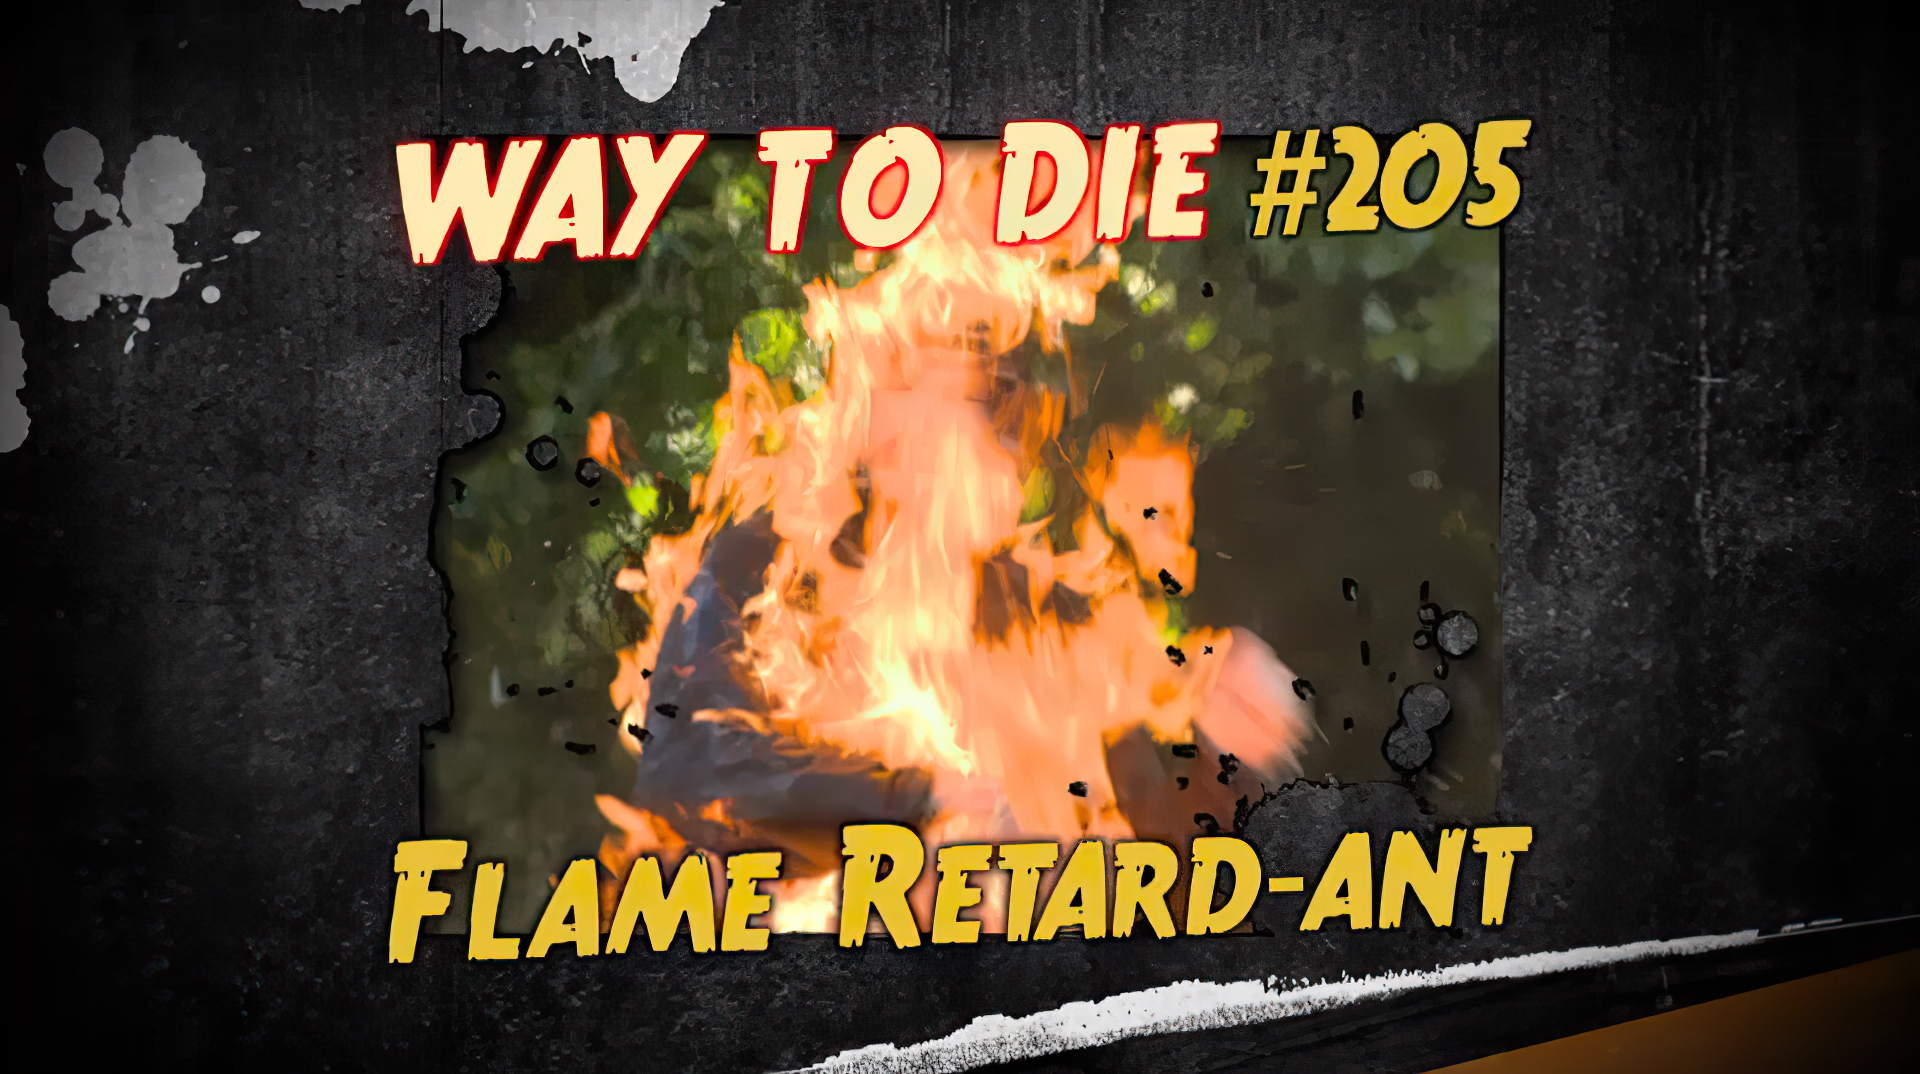 Flame Retard-ant